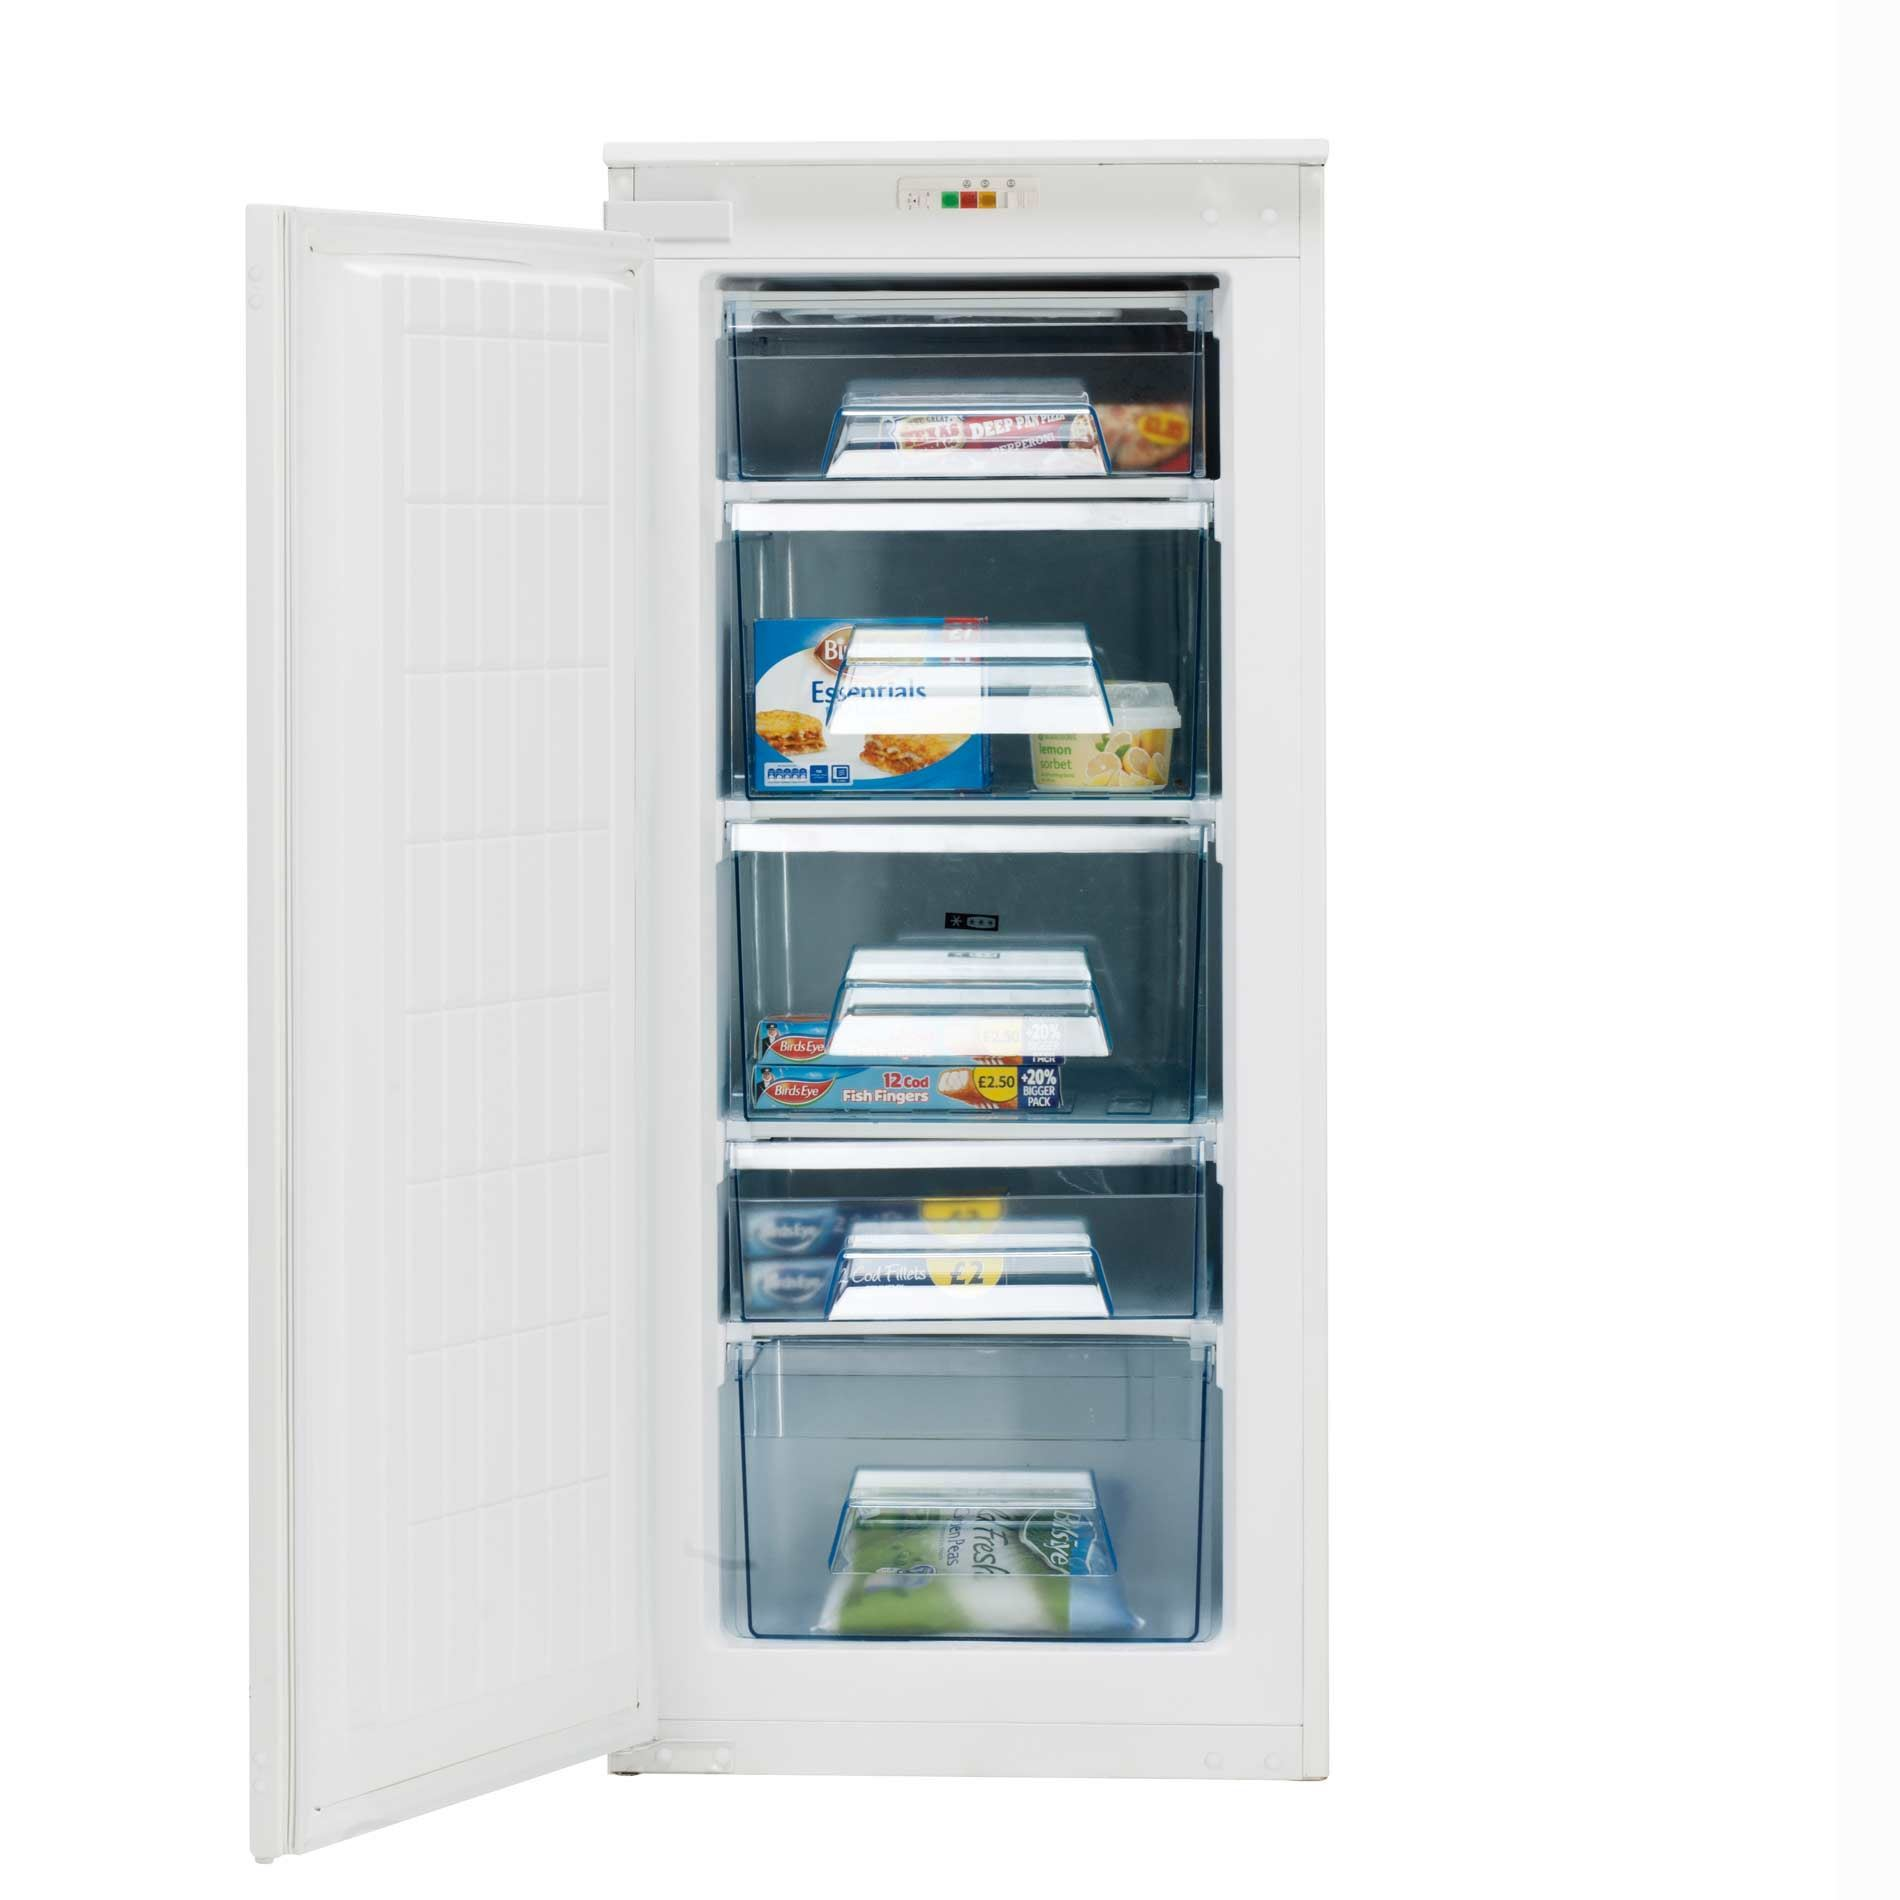 Picture of RiF123 In-column freezer